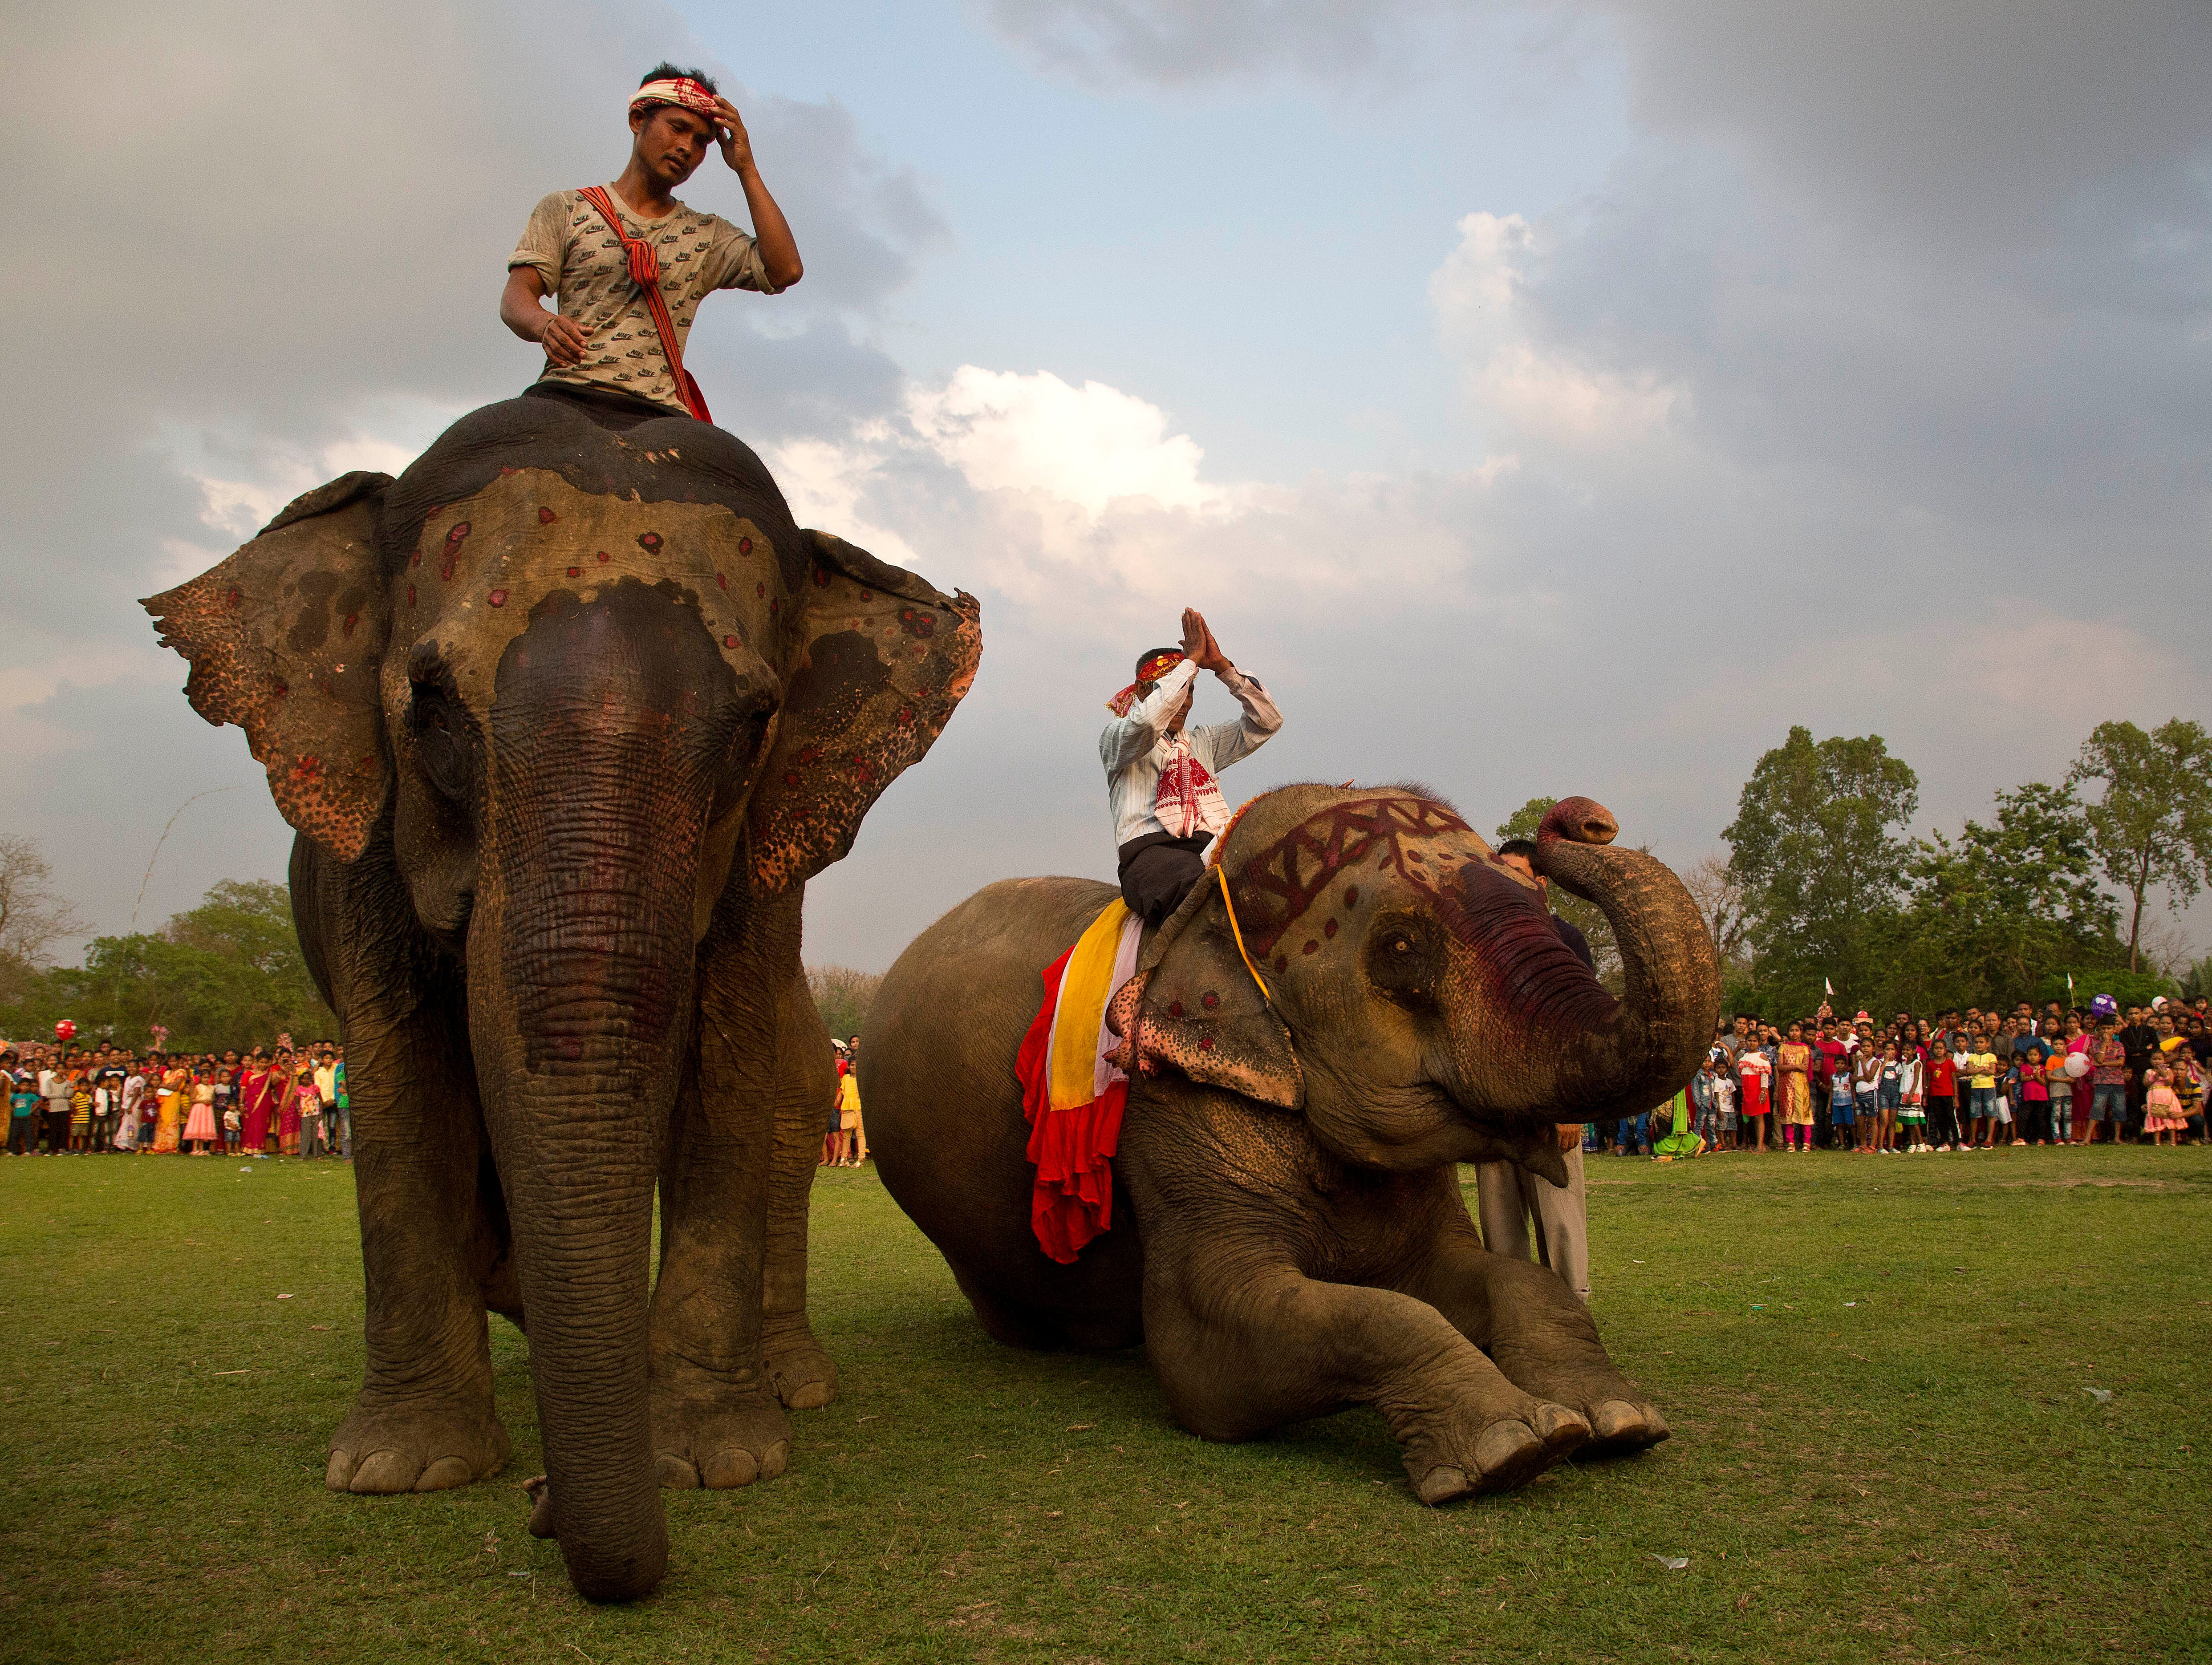 Mahouts and elephants salute villagers after a traditional elephant fight during the Suwori Tribal festival in Boko, west of Gauhati, India, Saturday, April 20, 2019. Traditional elephant fights, elephant races, horse races, tug of war and dances mark this festival which coincides with the Assamese Rongali Bihu, or the harvest festival of the northeastern Indian state of Assam.